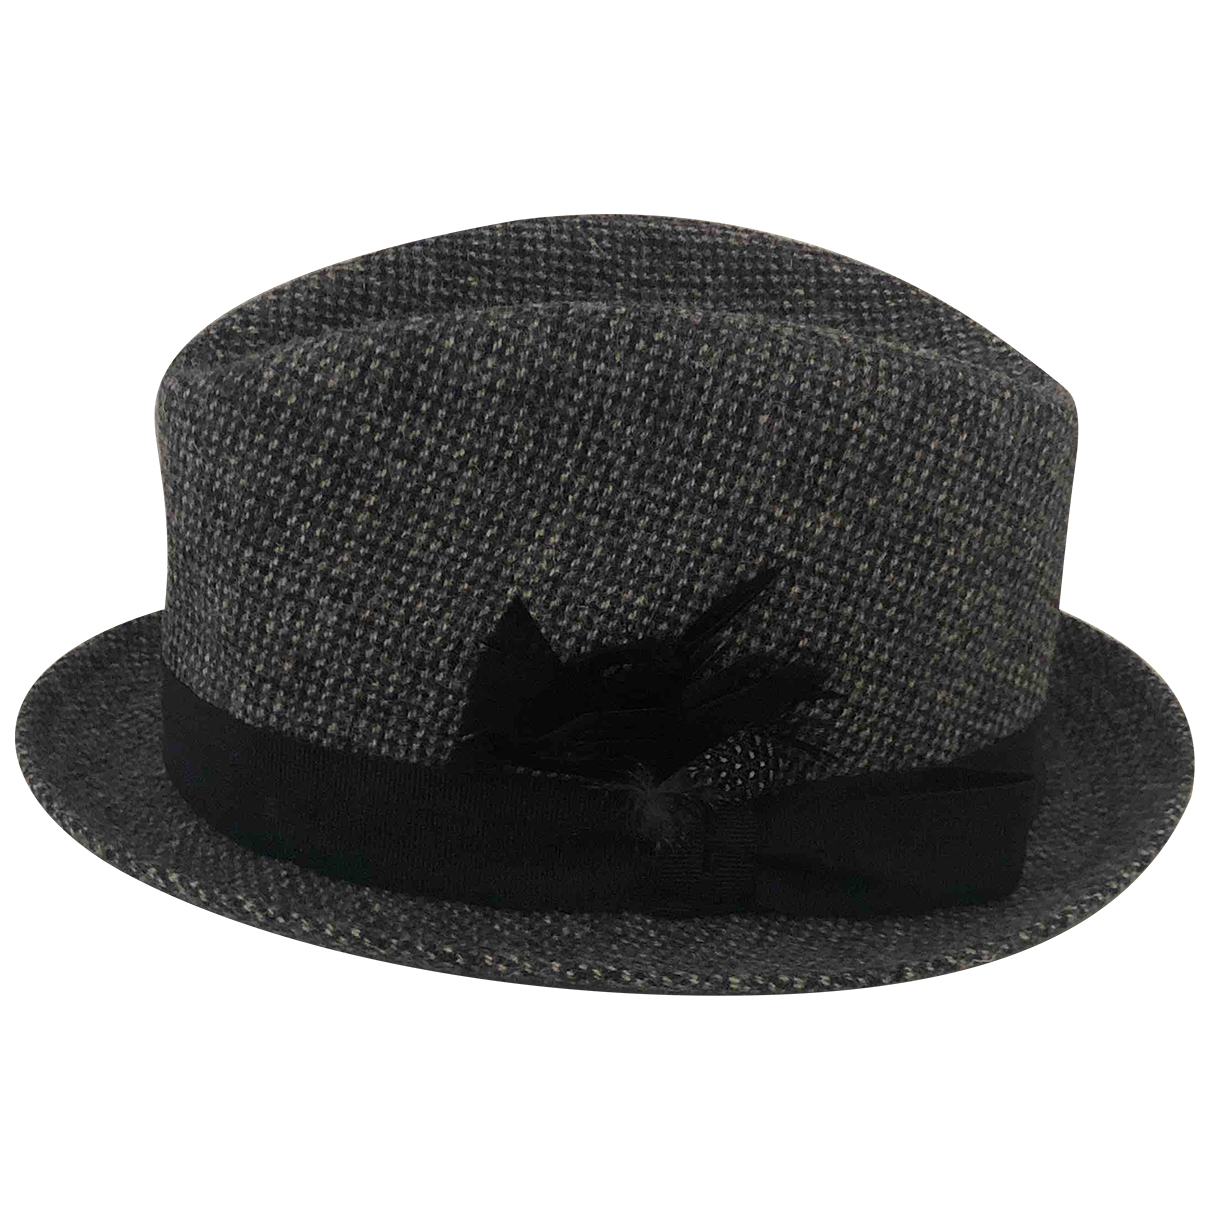 Paul Smith N Anthracite Wool hat & pull on hat for Men L International